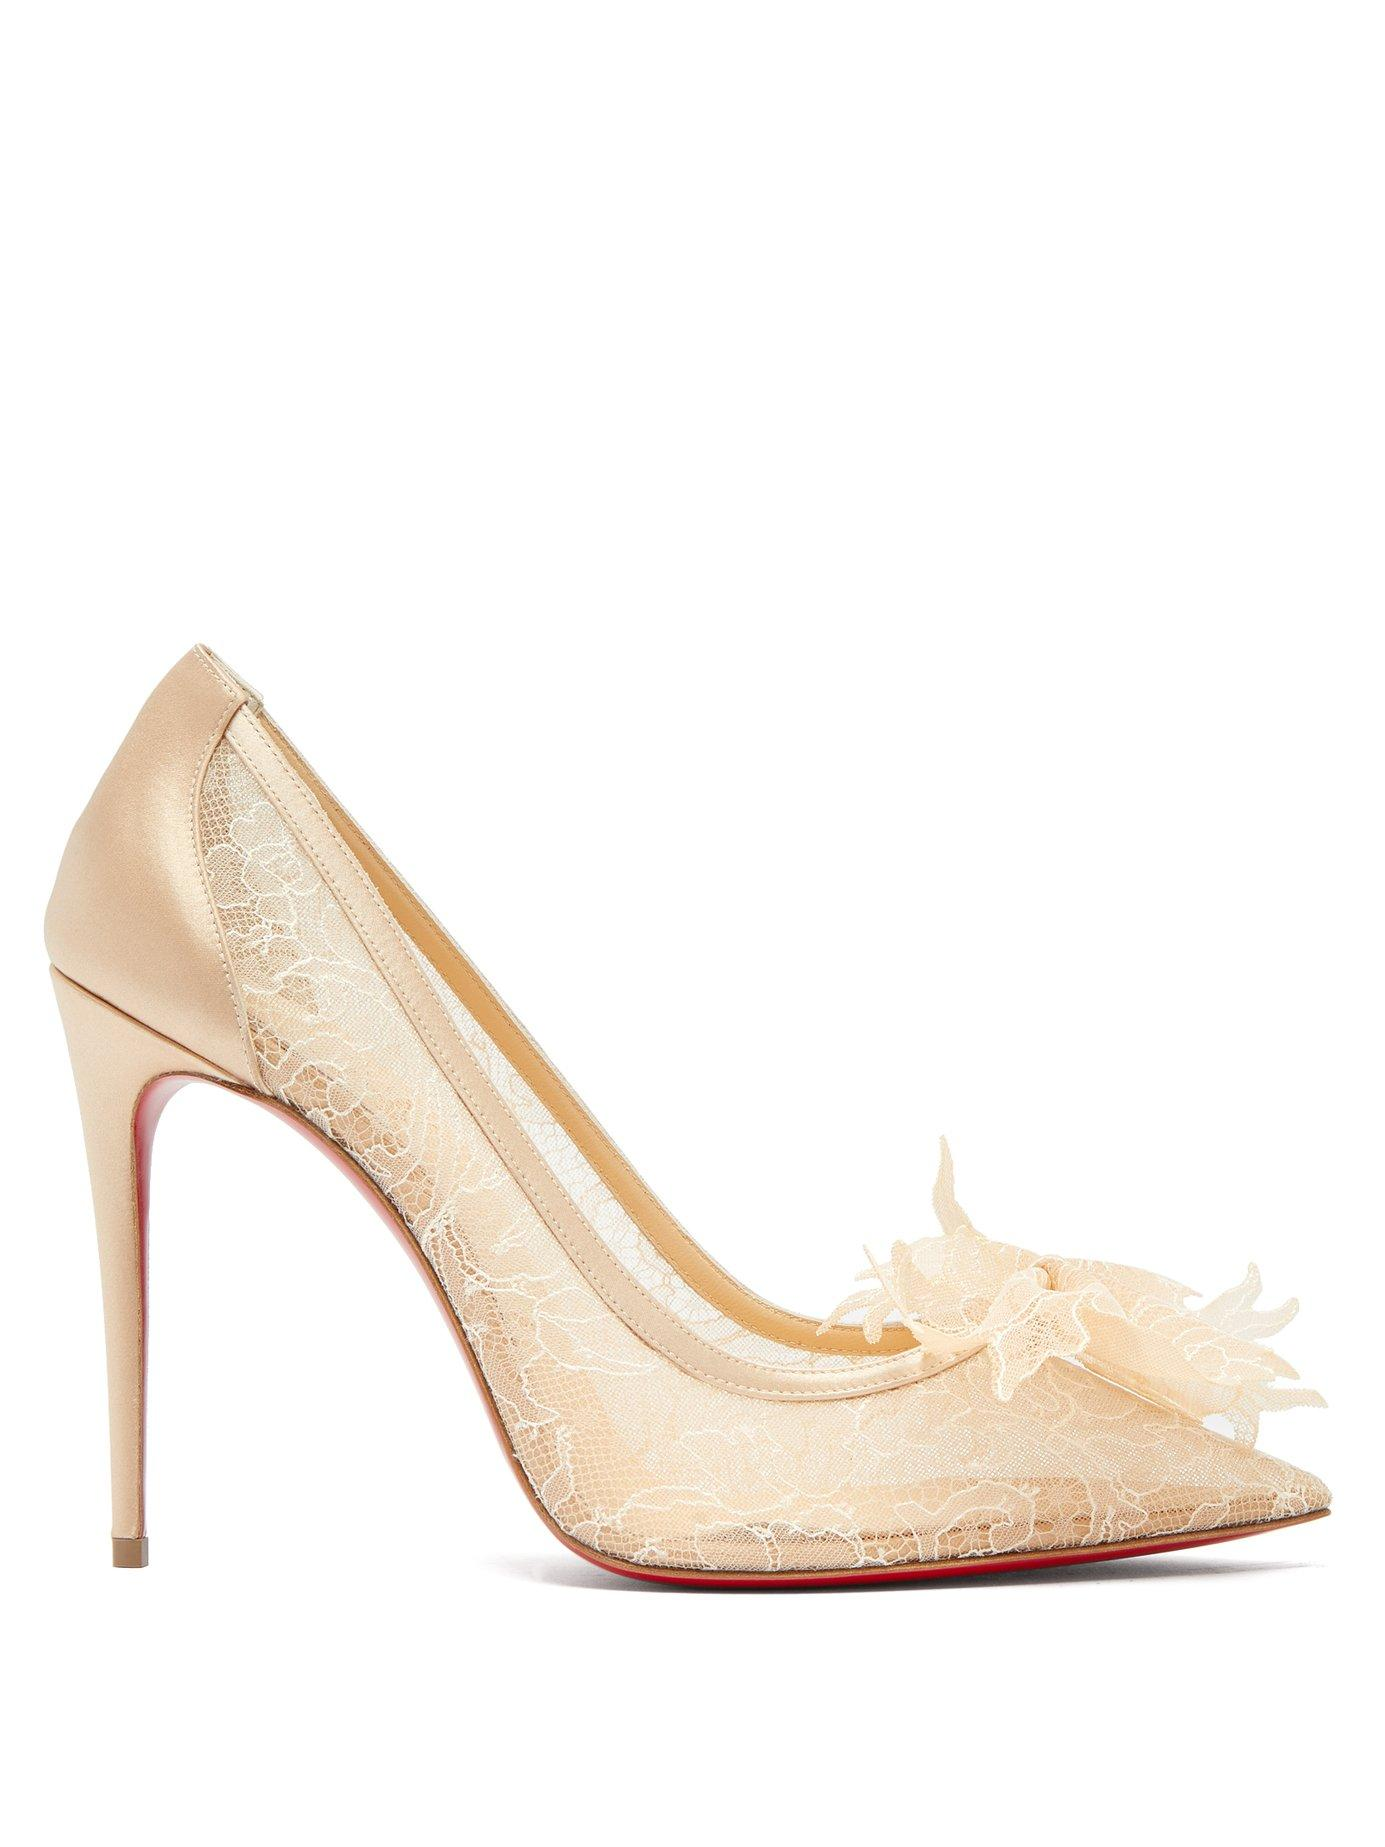 huge selection of fcdfc b8b47 Delicatissima 100 Lace Pumps in Nude